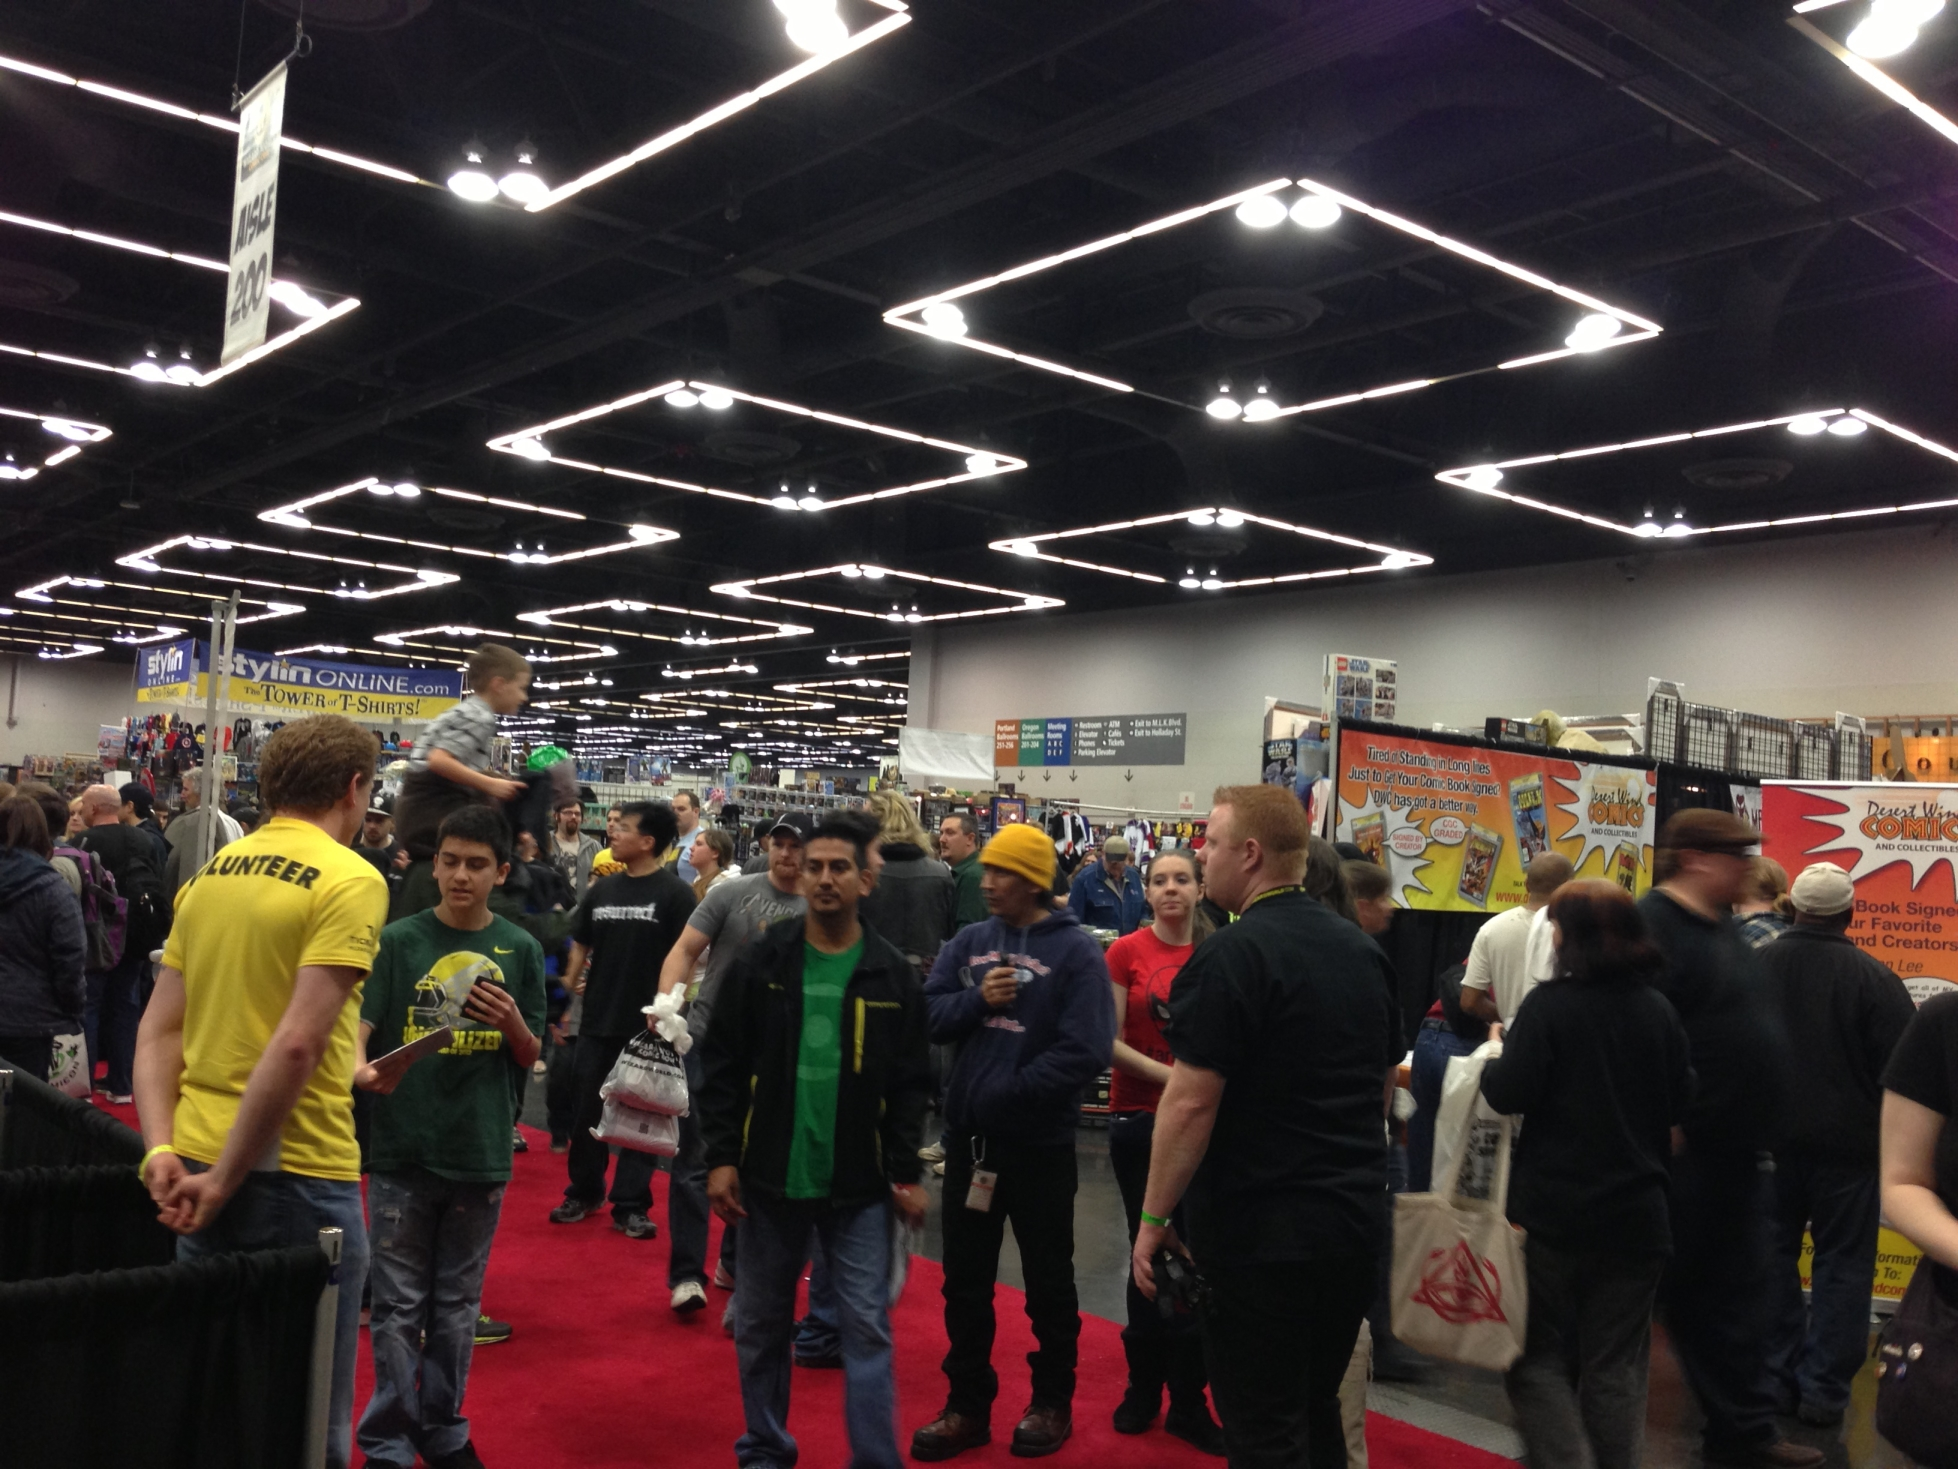 Portland Comic Con 2013 crowd